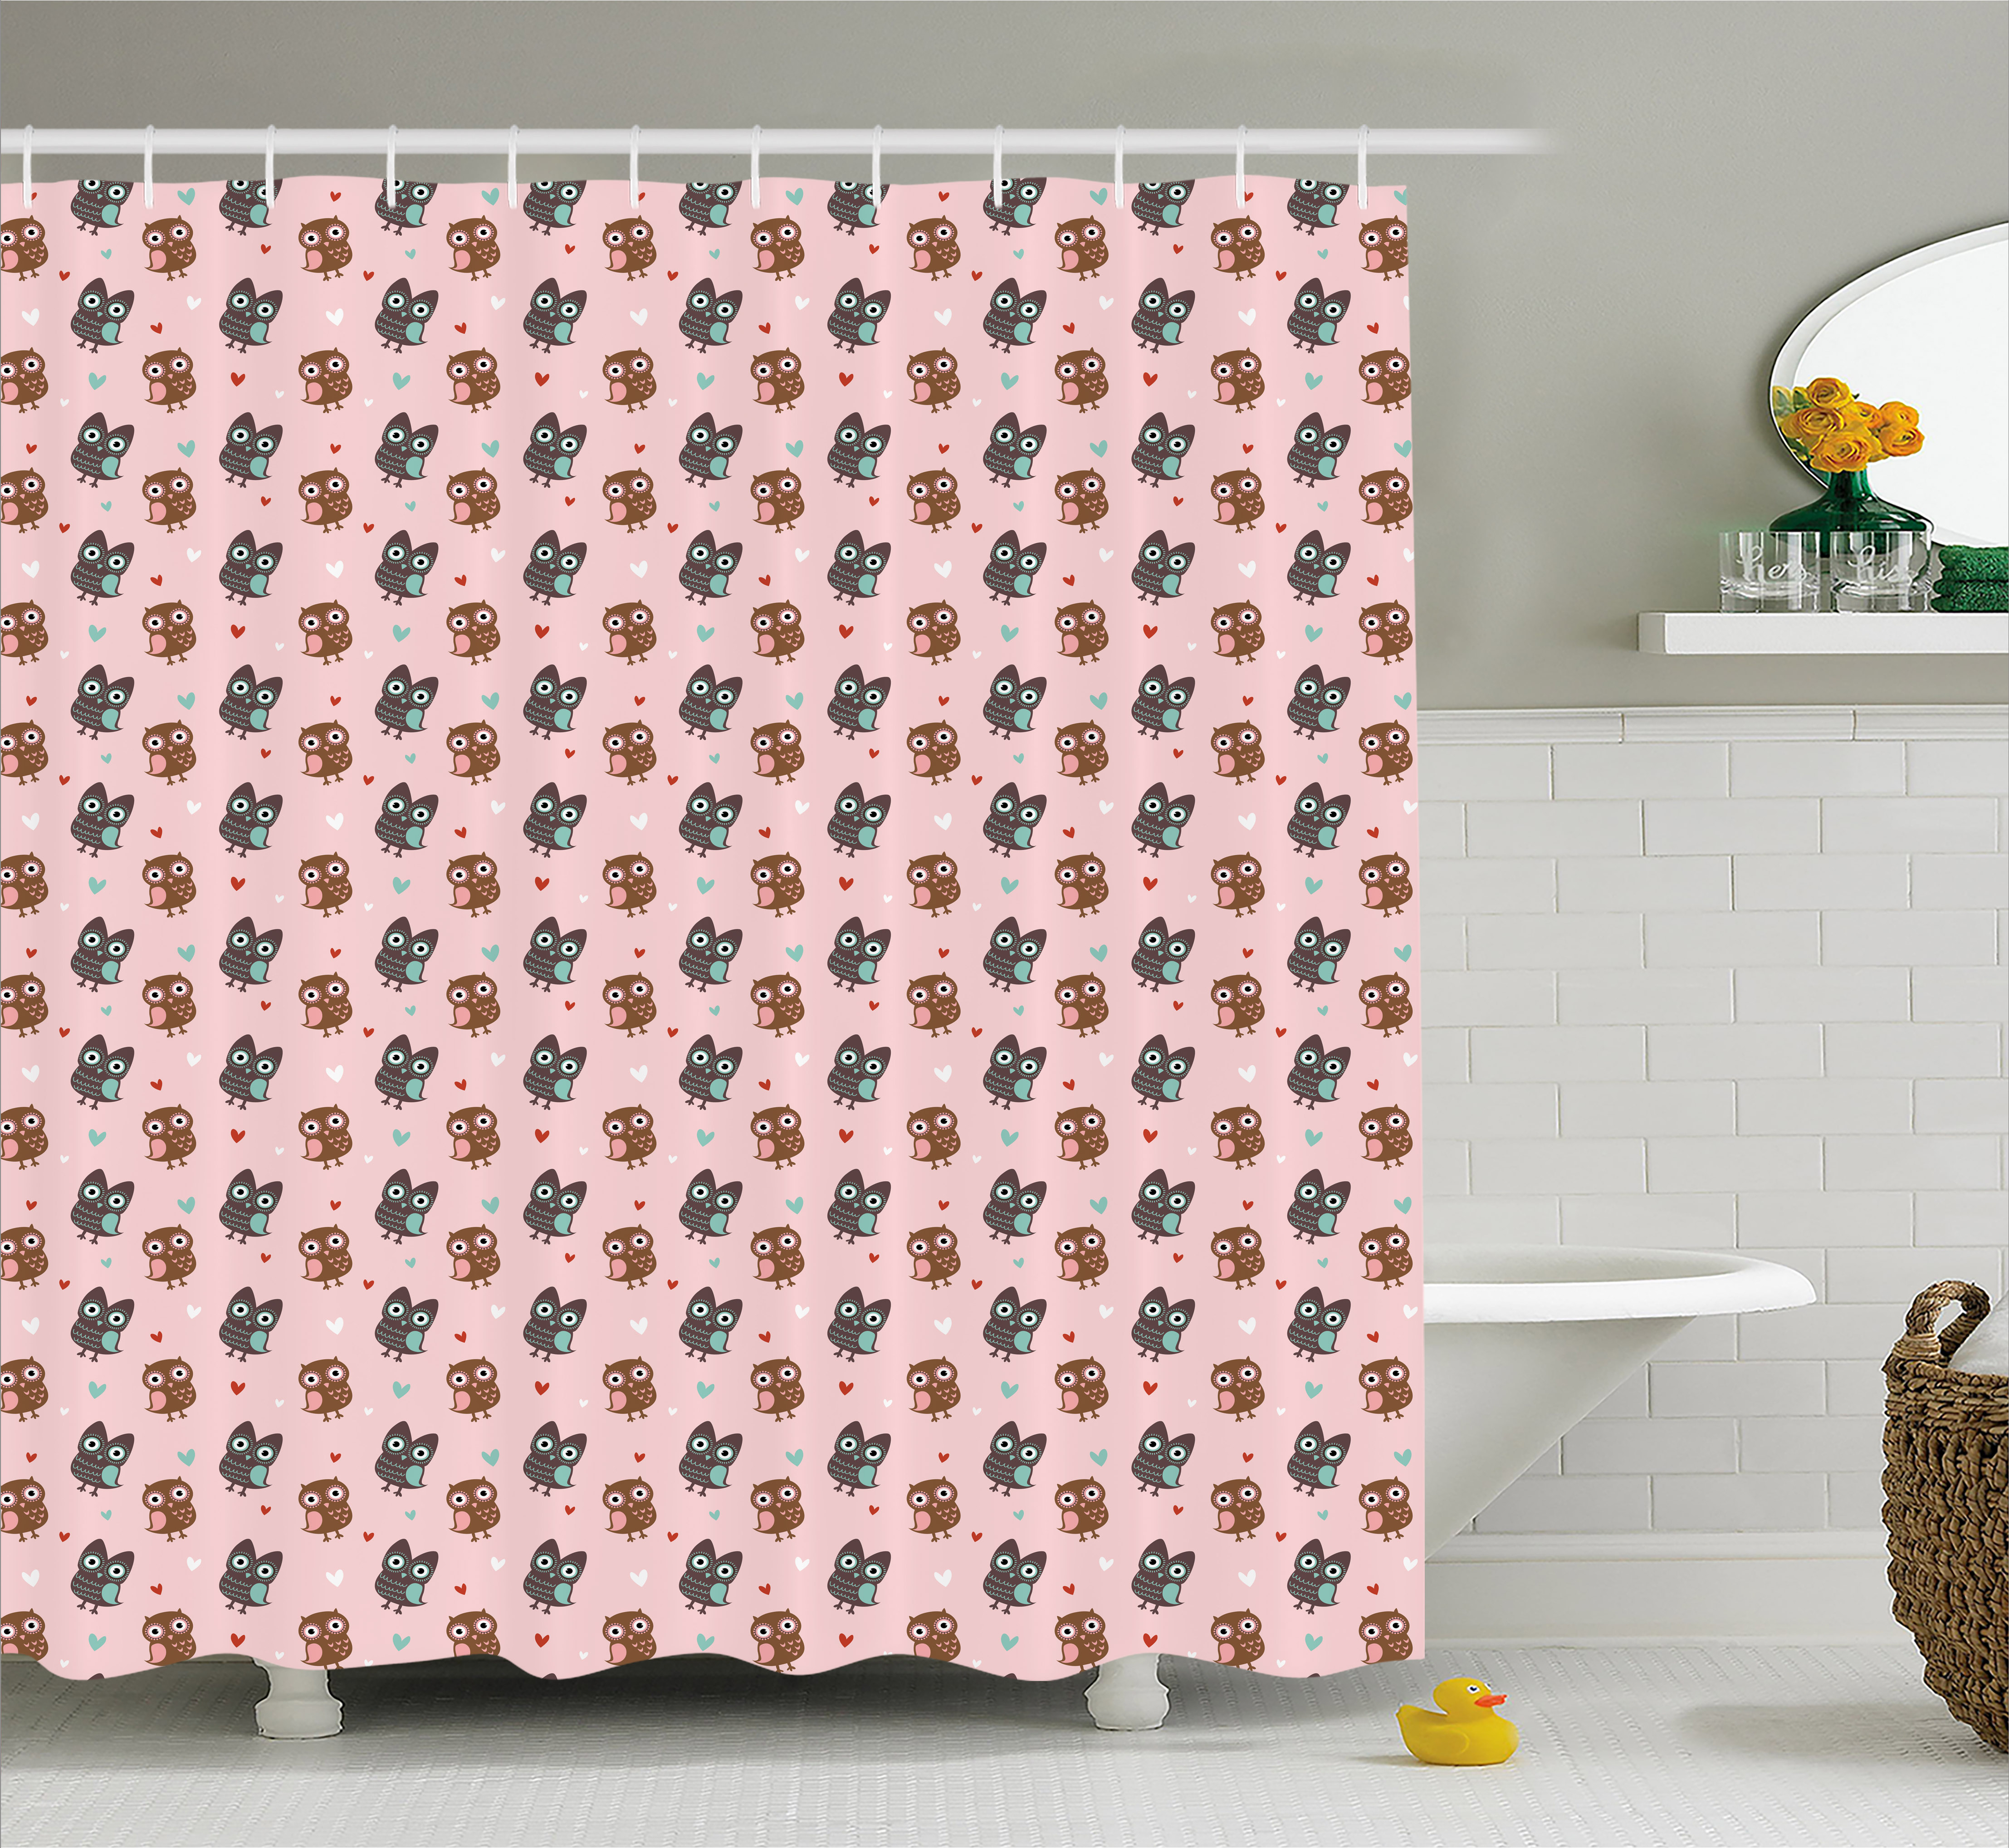 Owls Shower Curtain Valentine S Day Inspired Romantic